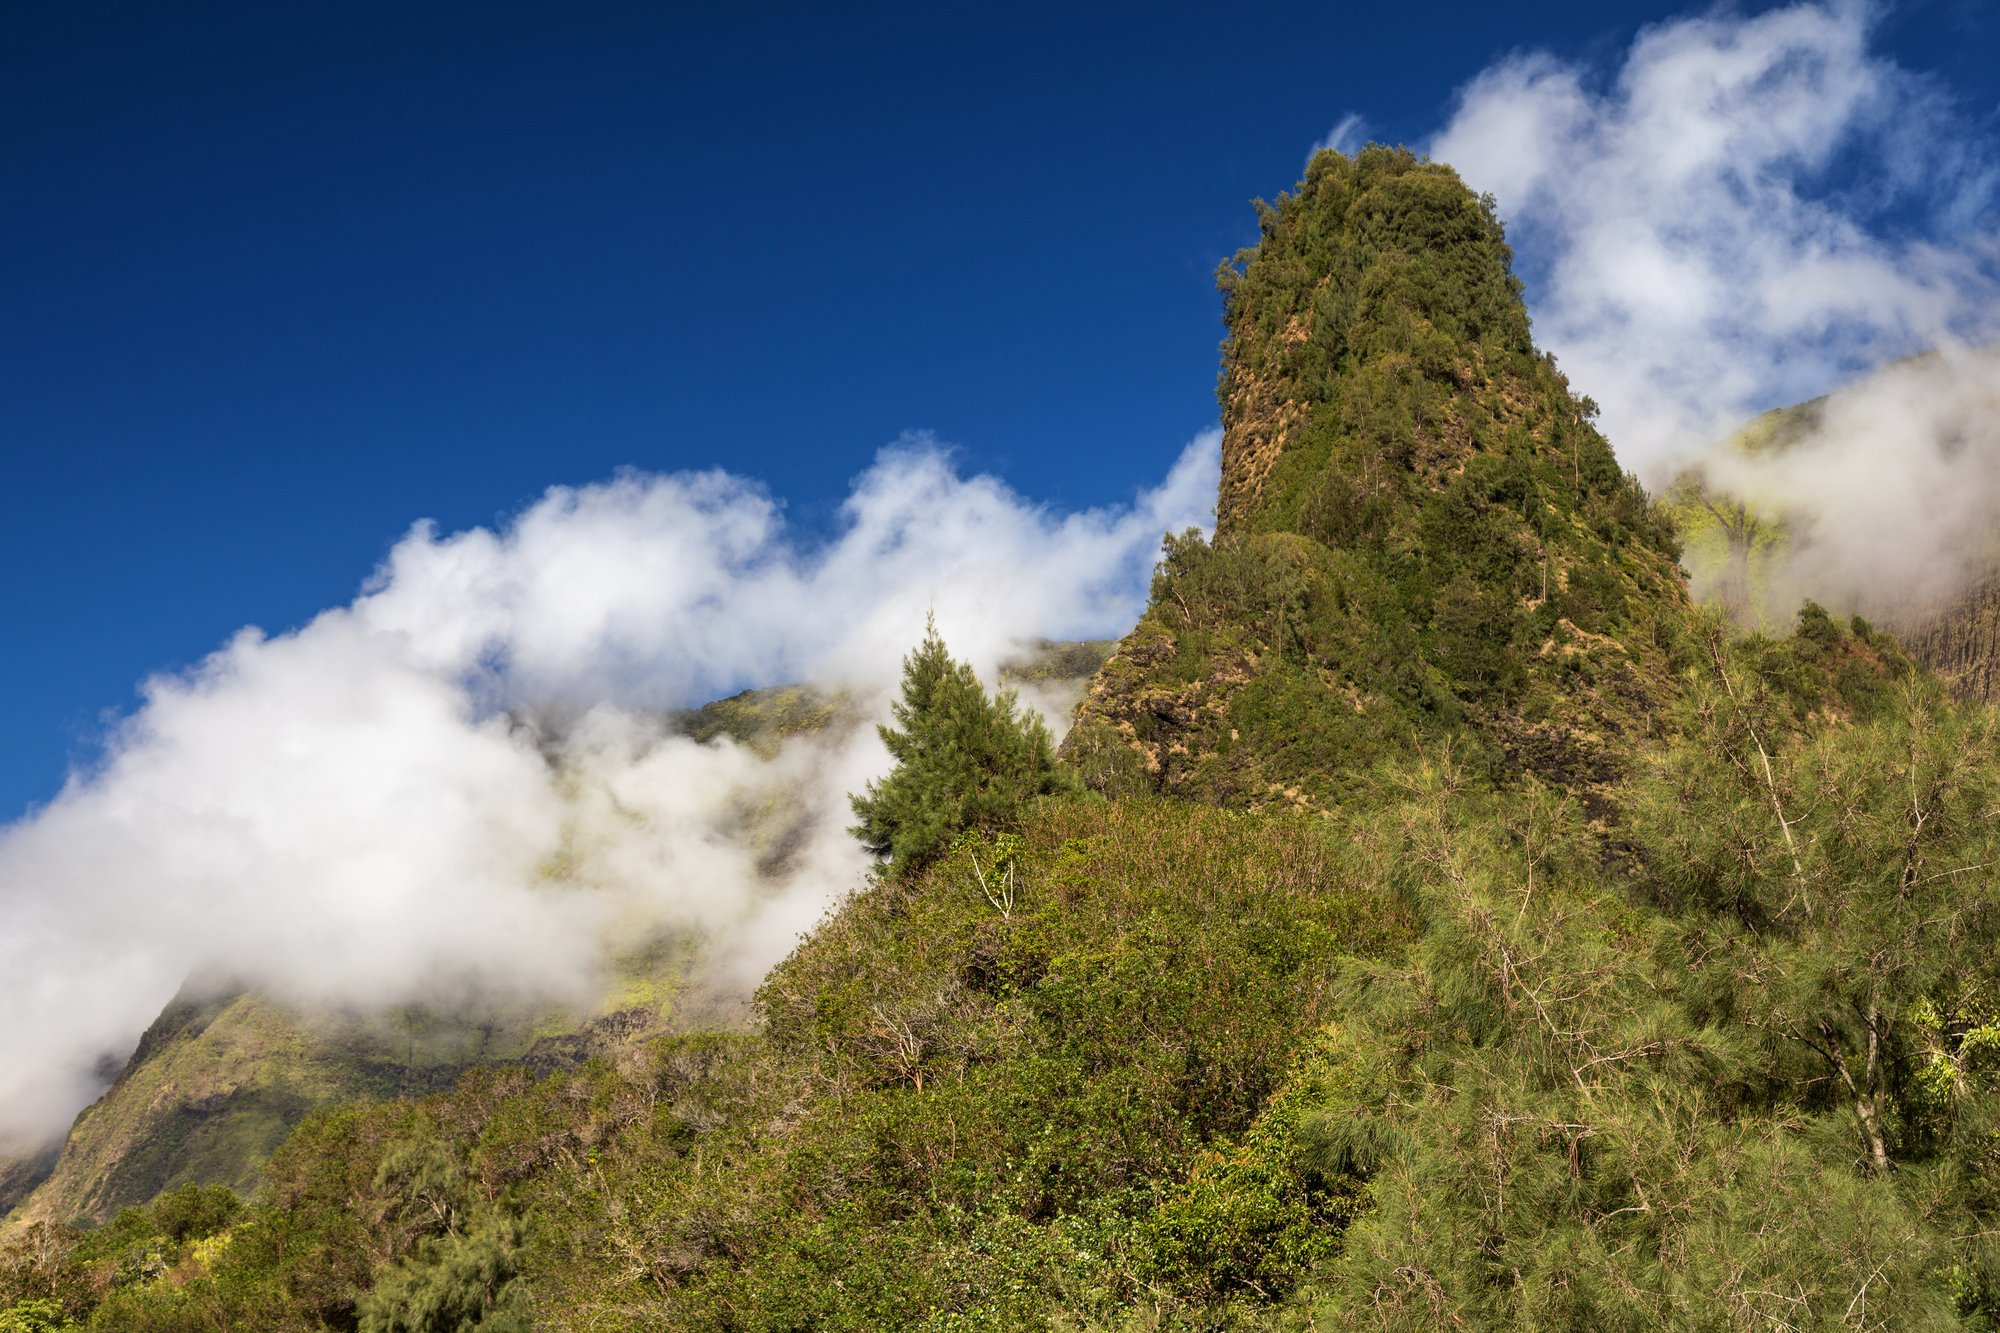 The Needle at Iao Valley State Park in Maui.